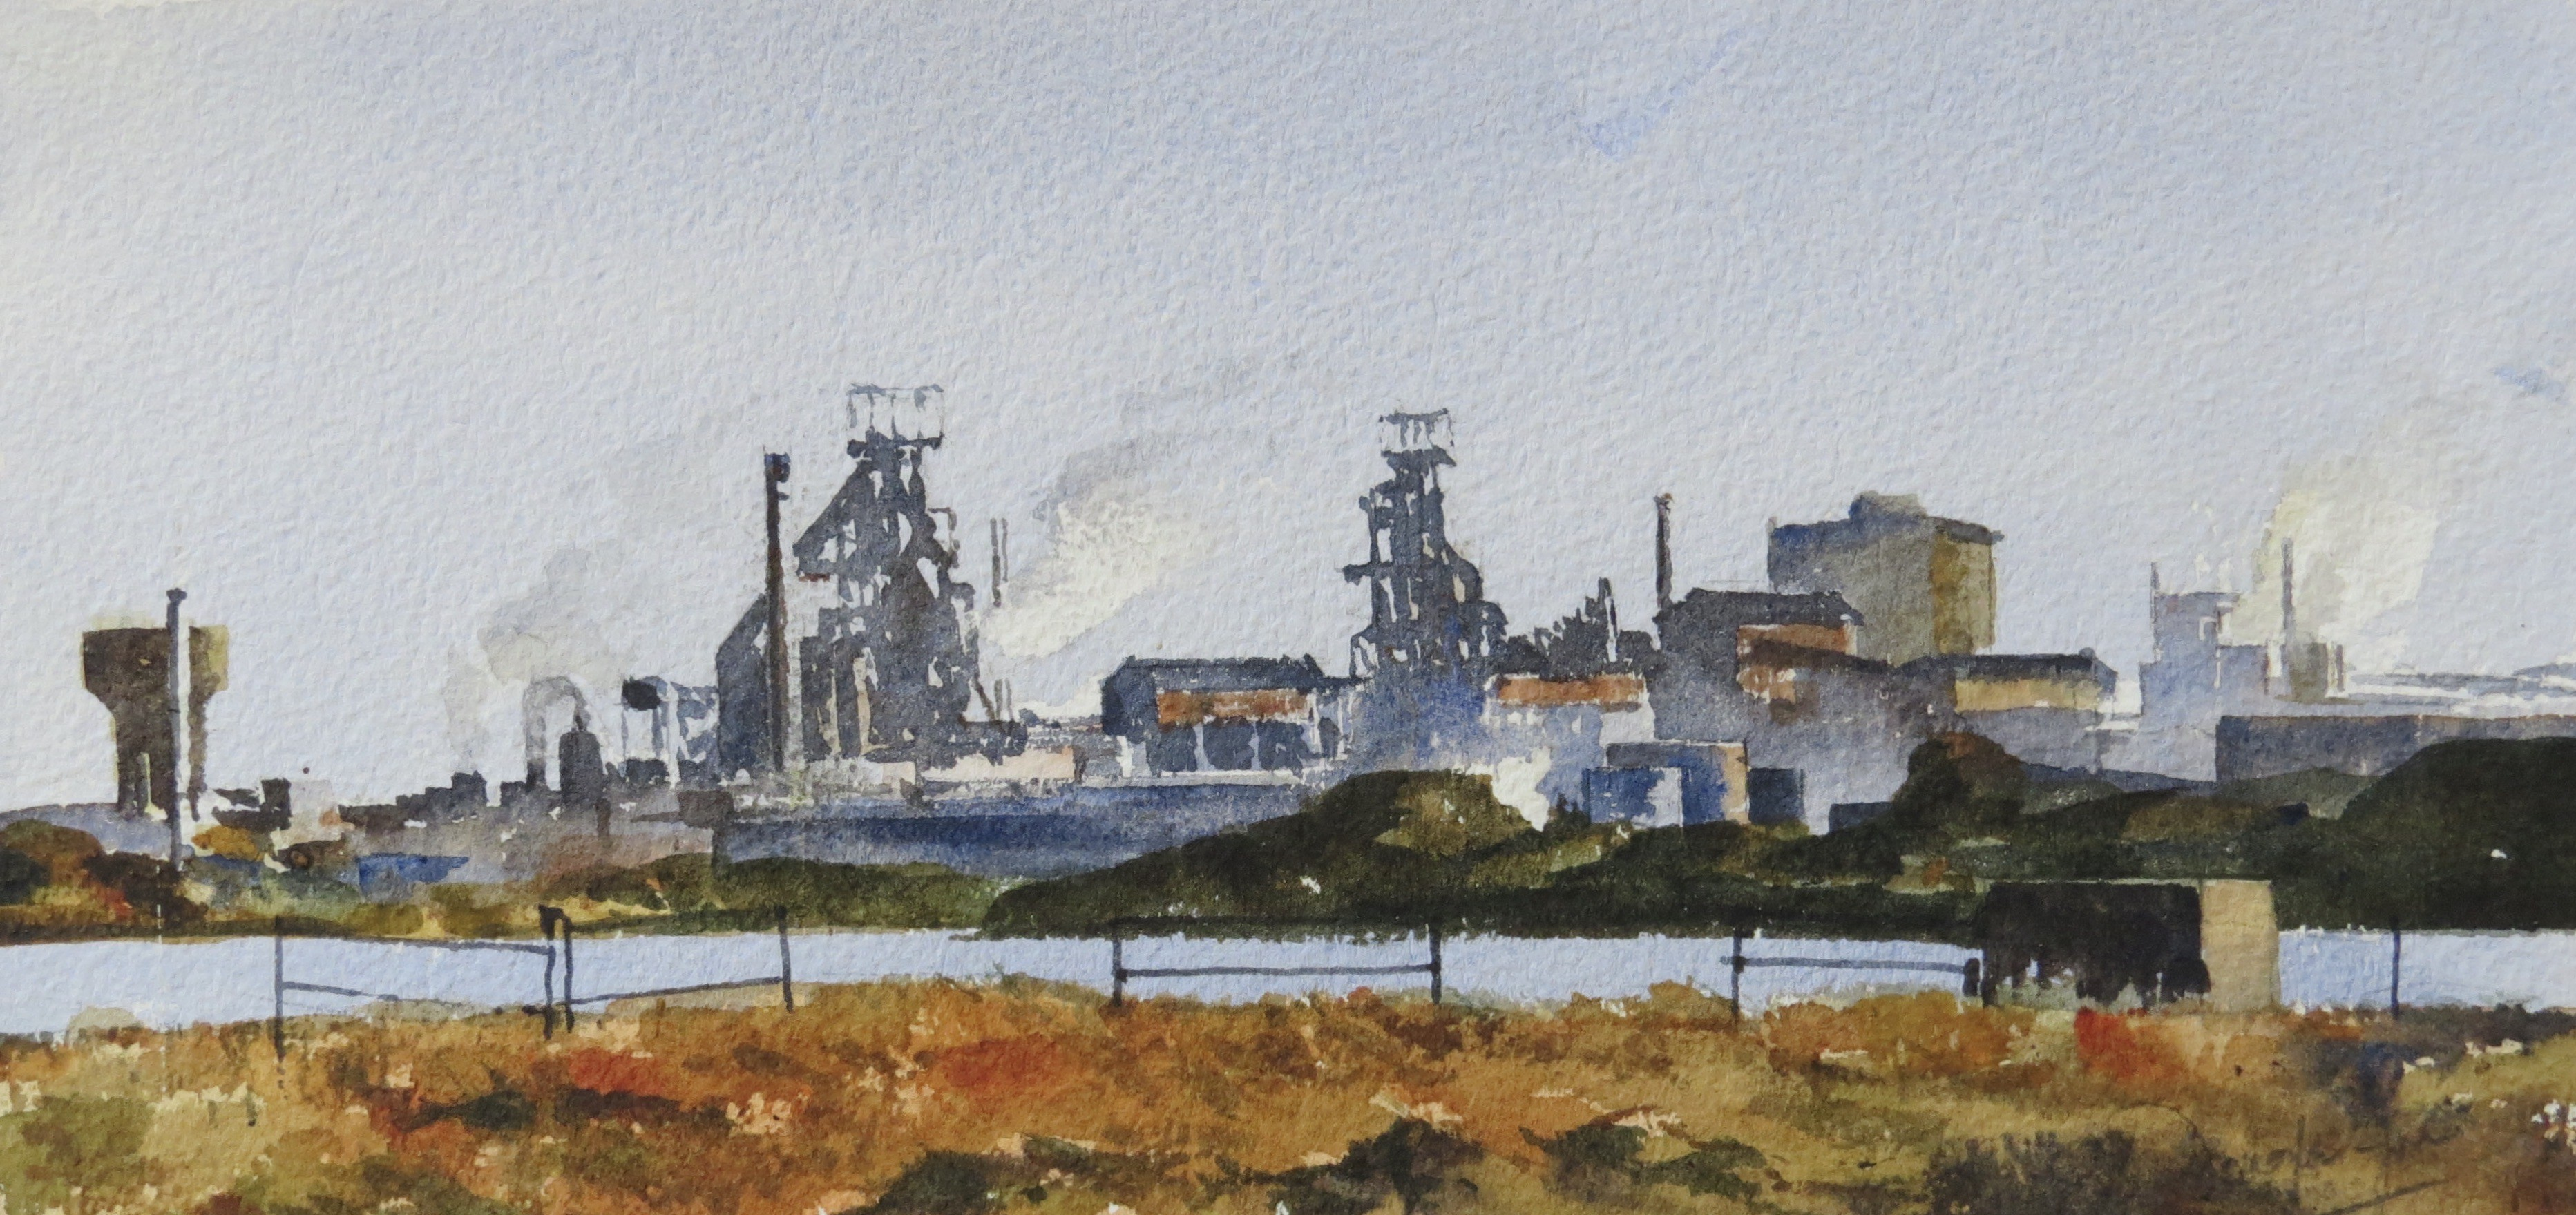 Steelworks Series No.4    15 x 30 cm    Watercolour